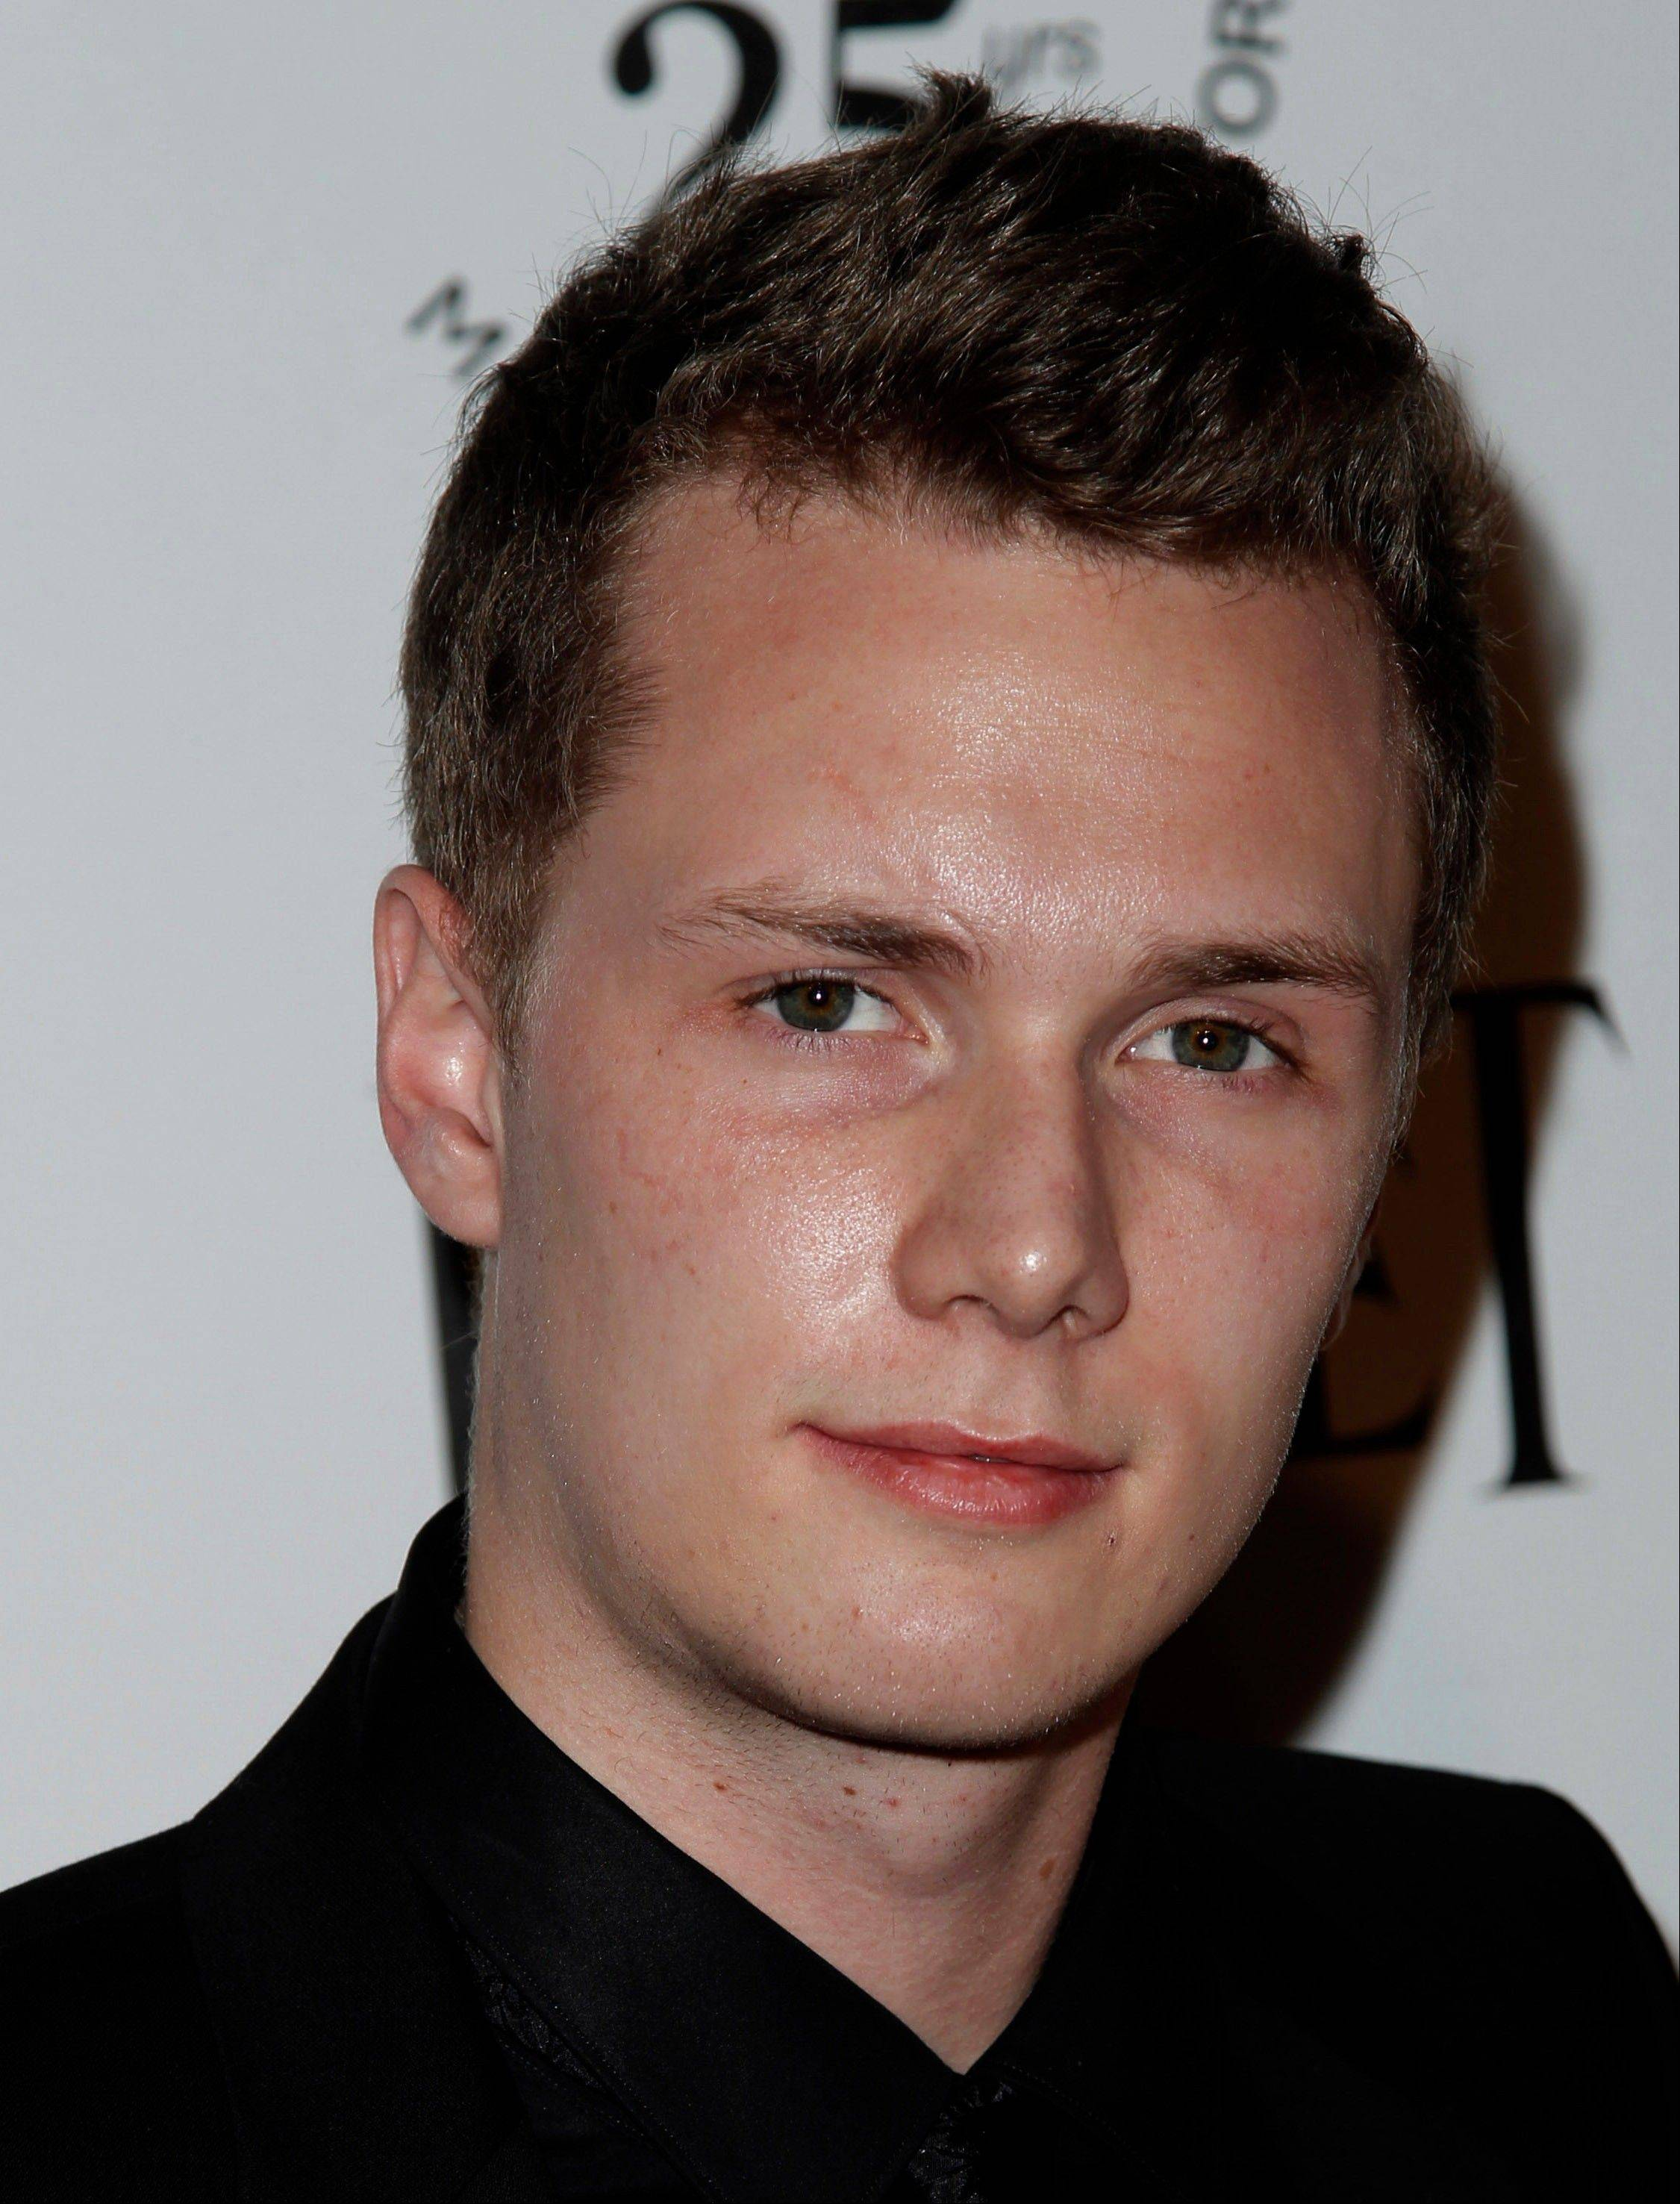 Authorities say Barron Hilton, the brother of socialite Paris Hilton, was assaulted at a Miami Beach party Friday. A police report says Hilton, 24, told authorities a man struck him in the face after the two had an argument at a party.